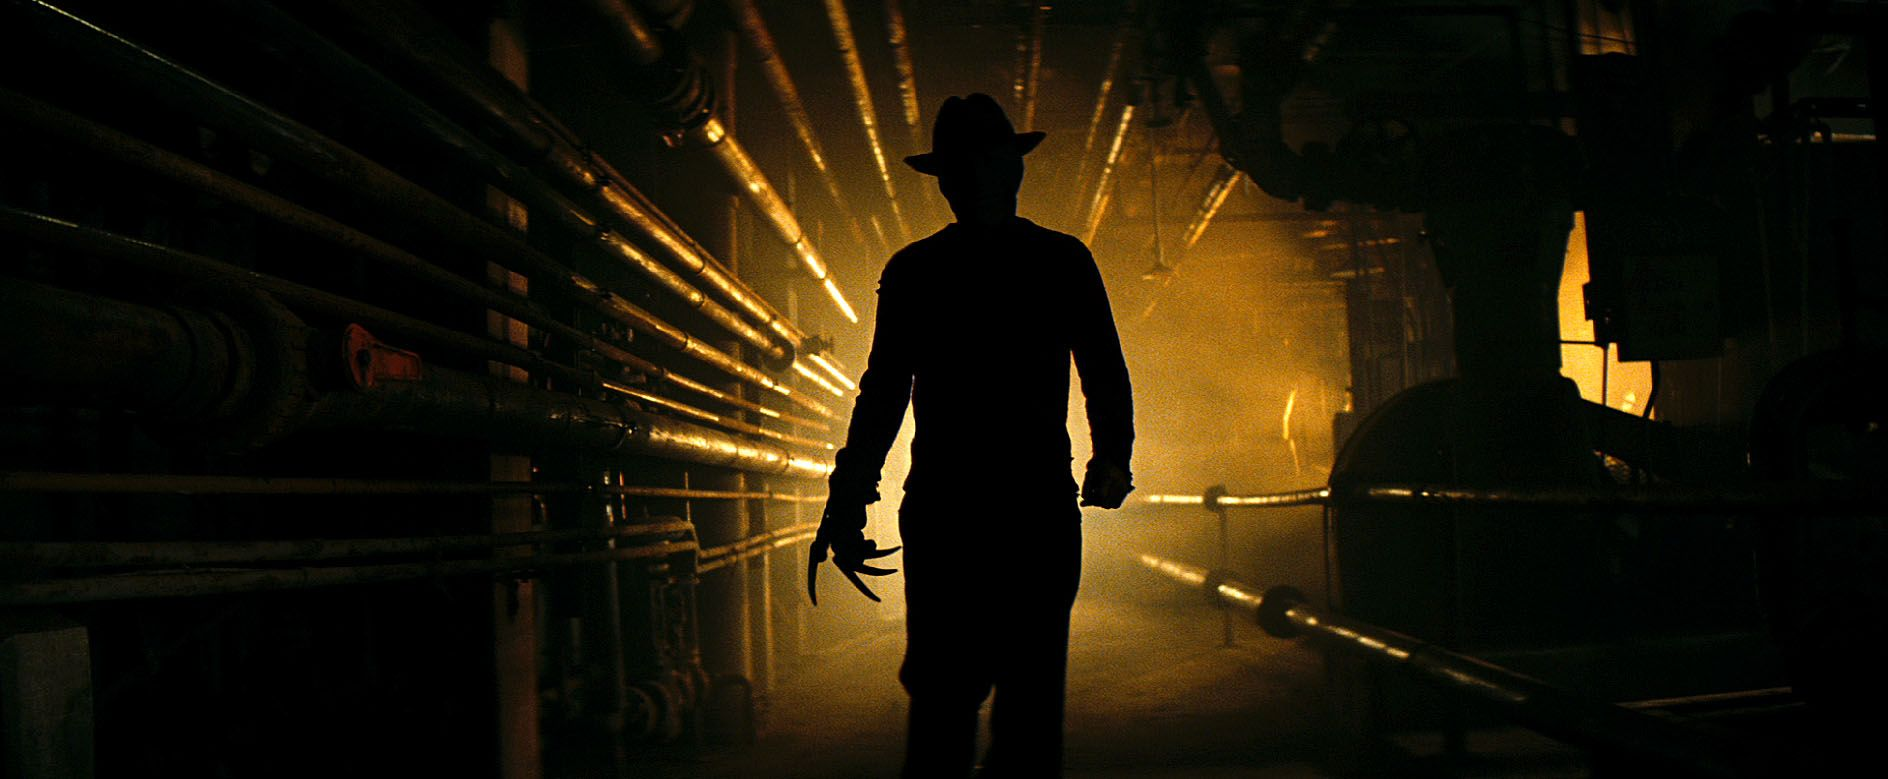 Tons Of New Images From A Nightmare On Elm Street Plus